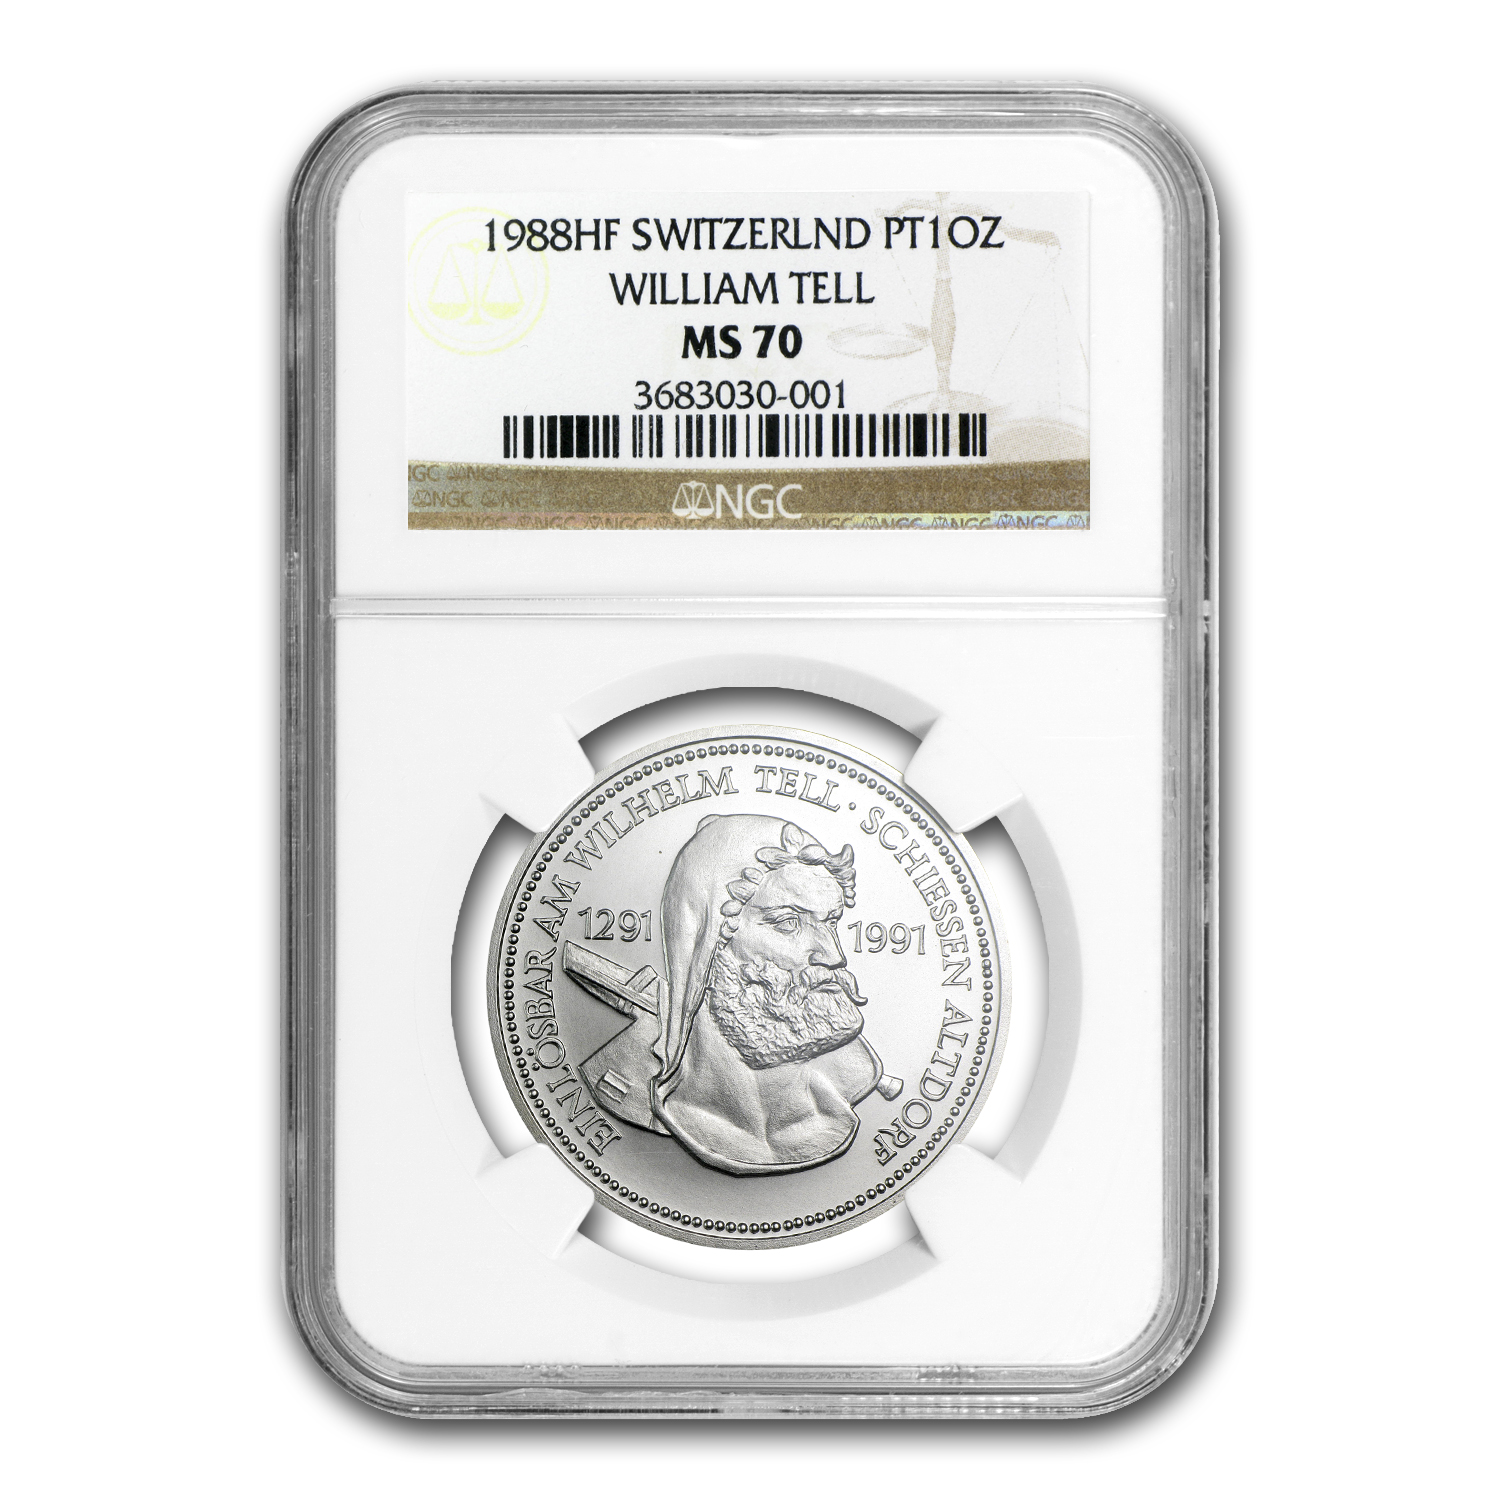 1988 1 oz Swiss Platinum William Tell MS-70 NGC